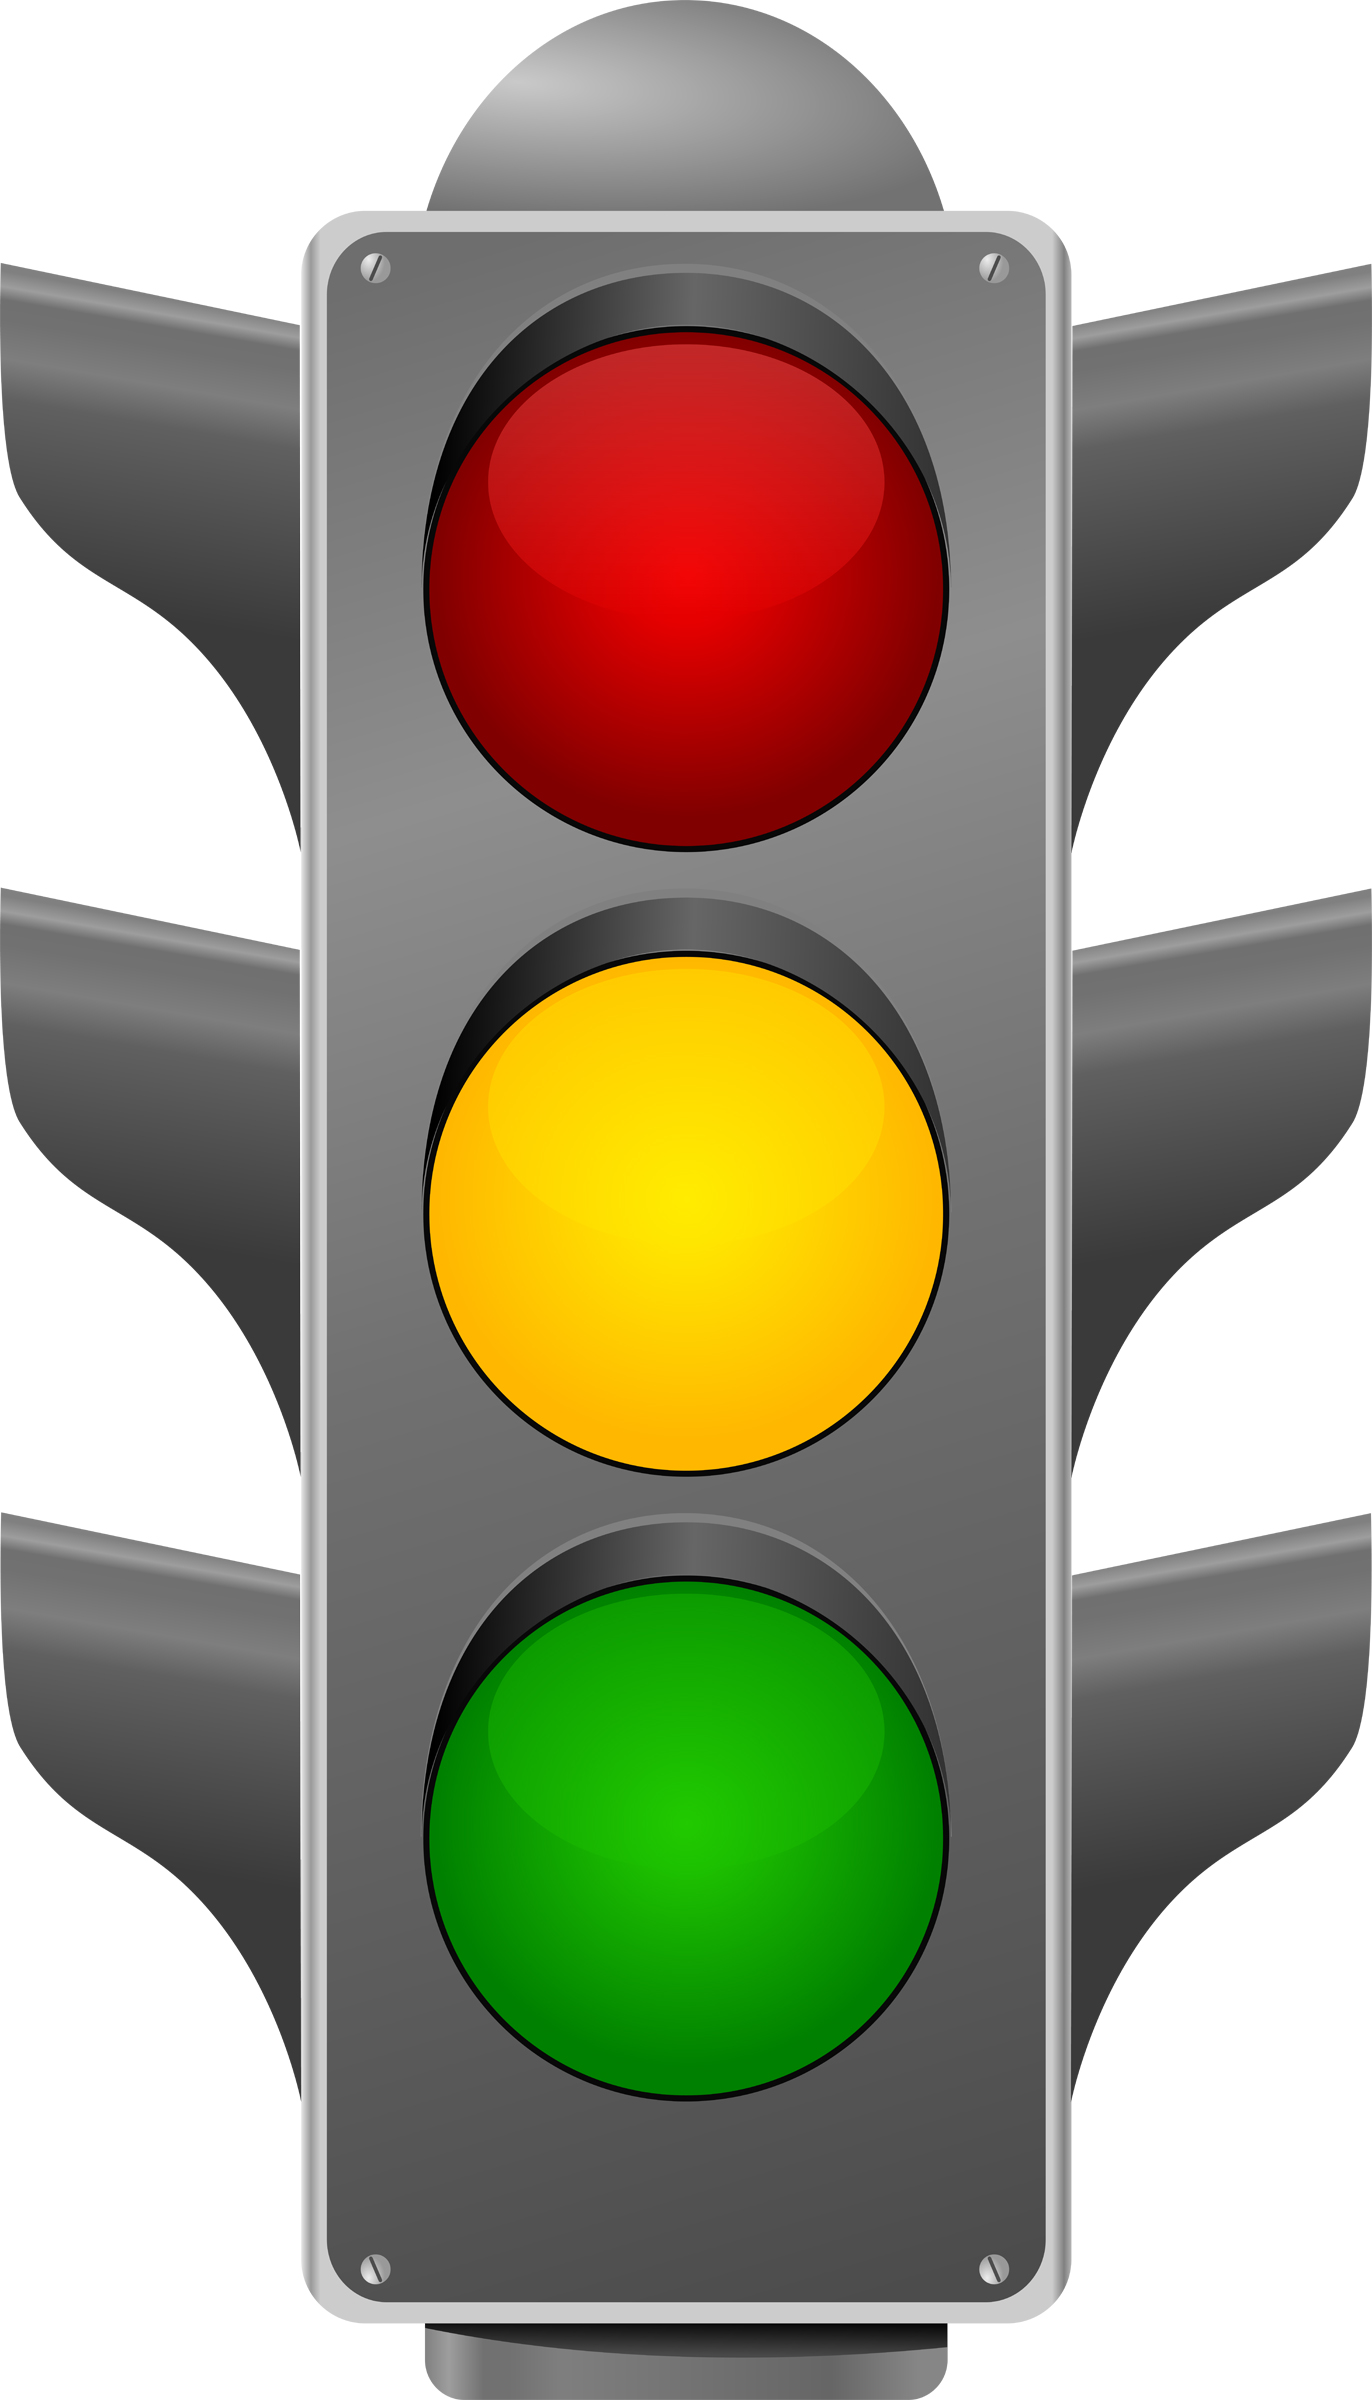 red stop light clipart image  27070